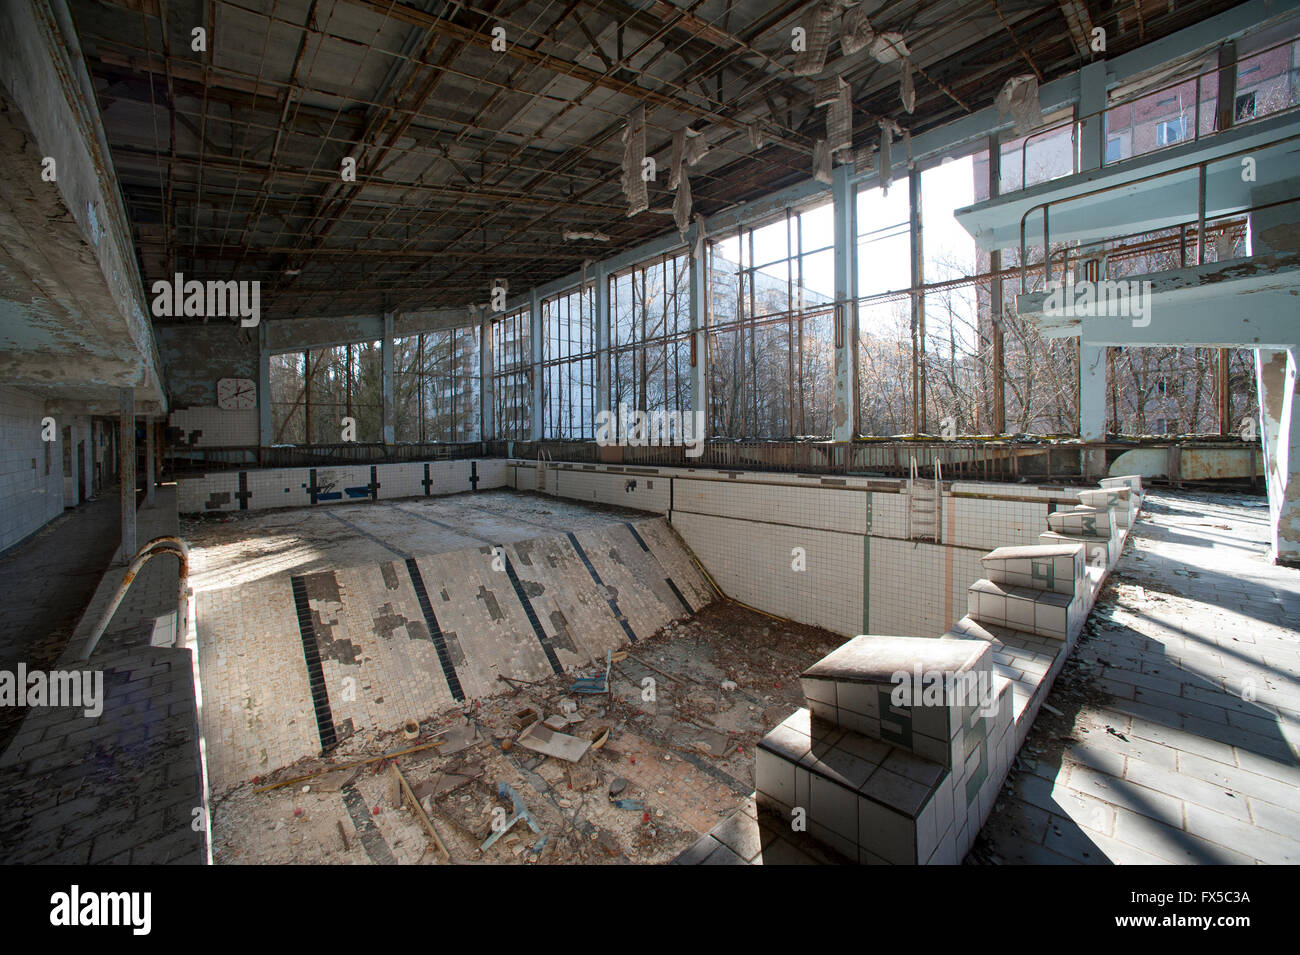 The swimming pool in the deserted town of Pripyat following the Chernobyl nuclear disaster in 1986 - Stock Image